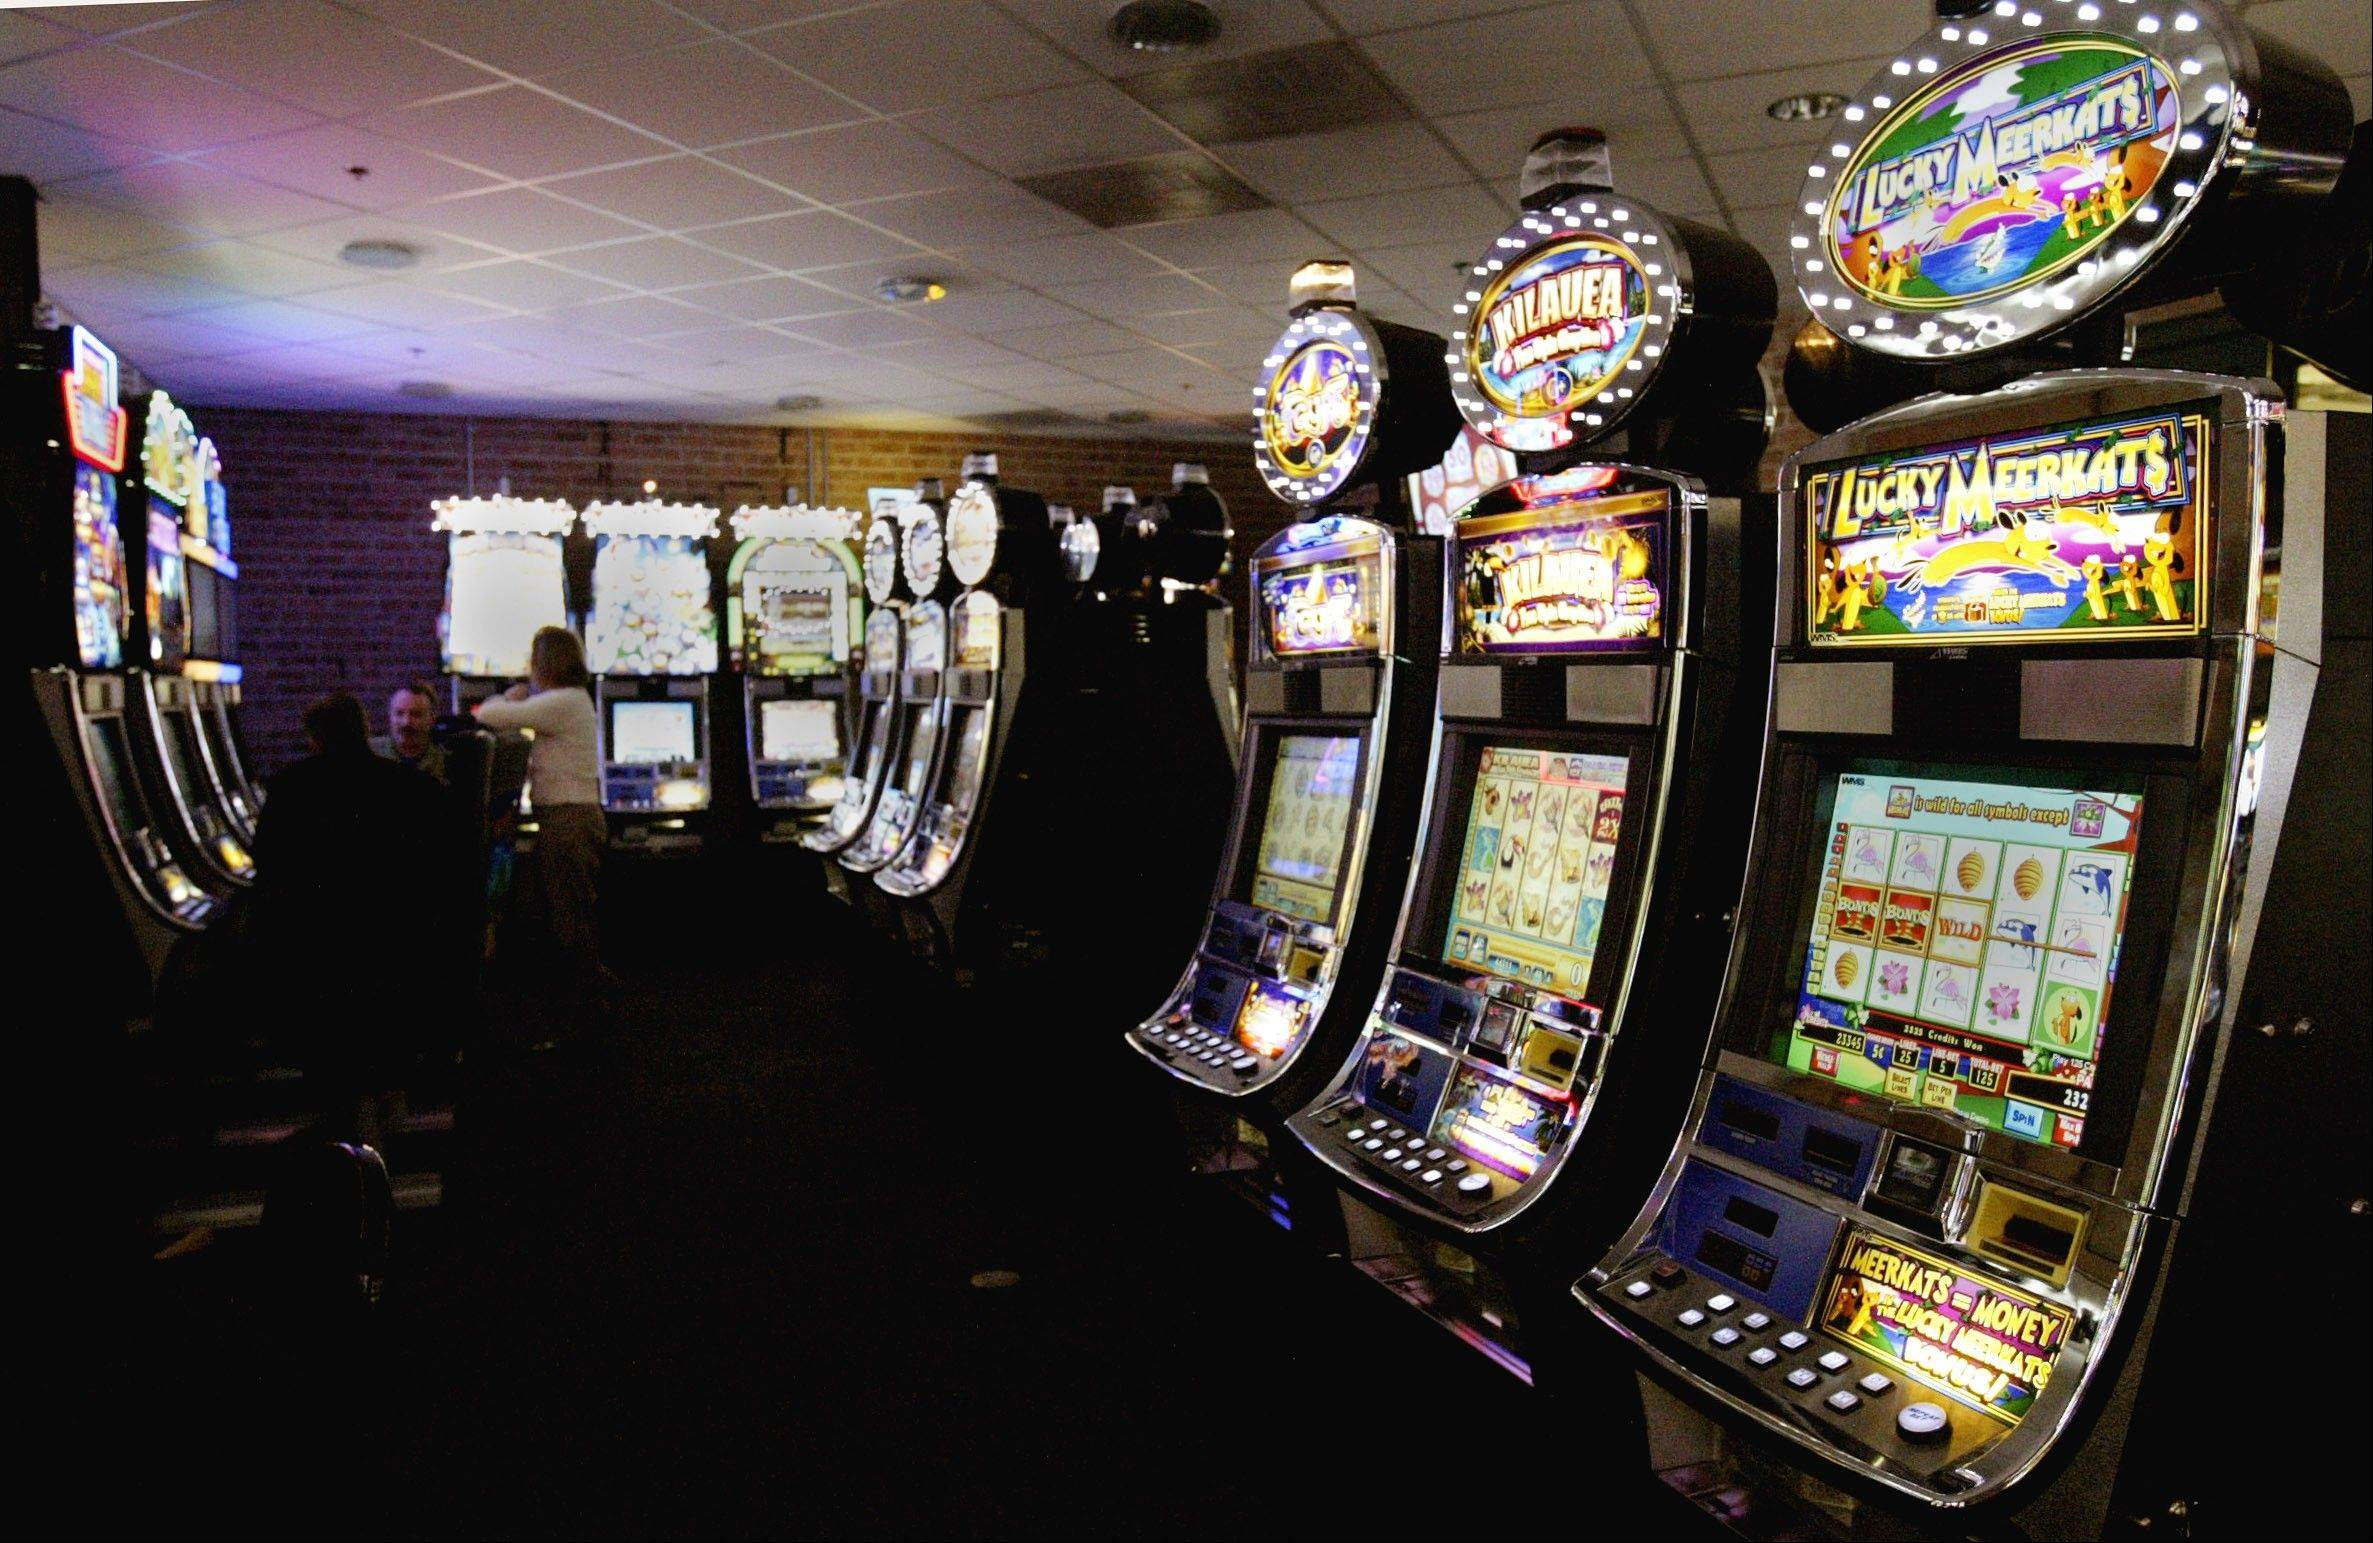 Another gambling vote could be coming up this November in Illinois, this time on overriding Gov. Pat Quinn's veto of a bill that would allow slot machines at race tracks as well as new casinos.